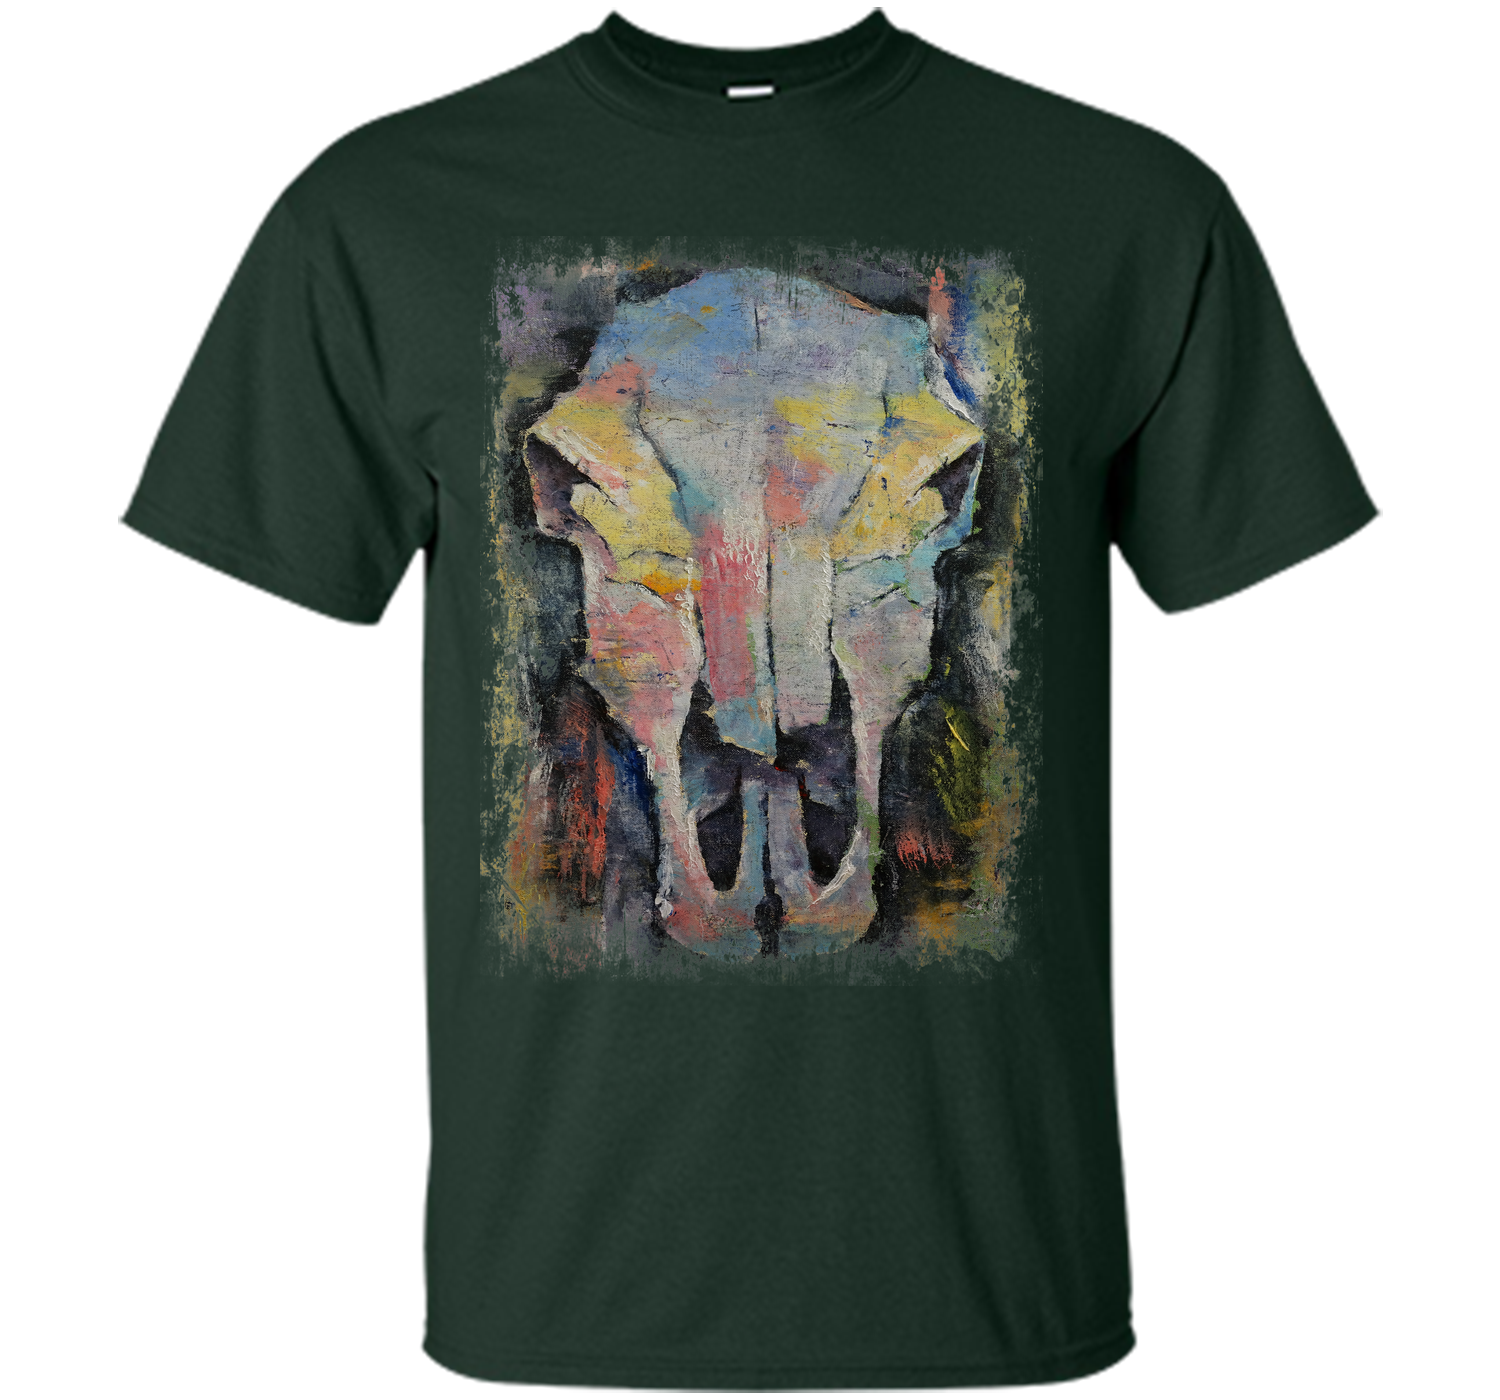 Charming Horse Skull Anatomy 2017 T Shirt | Products | Pinterest ...